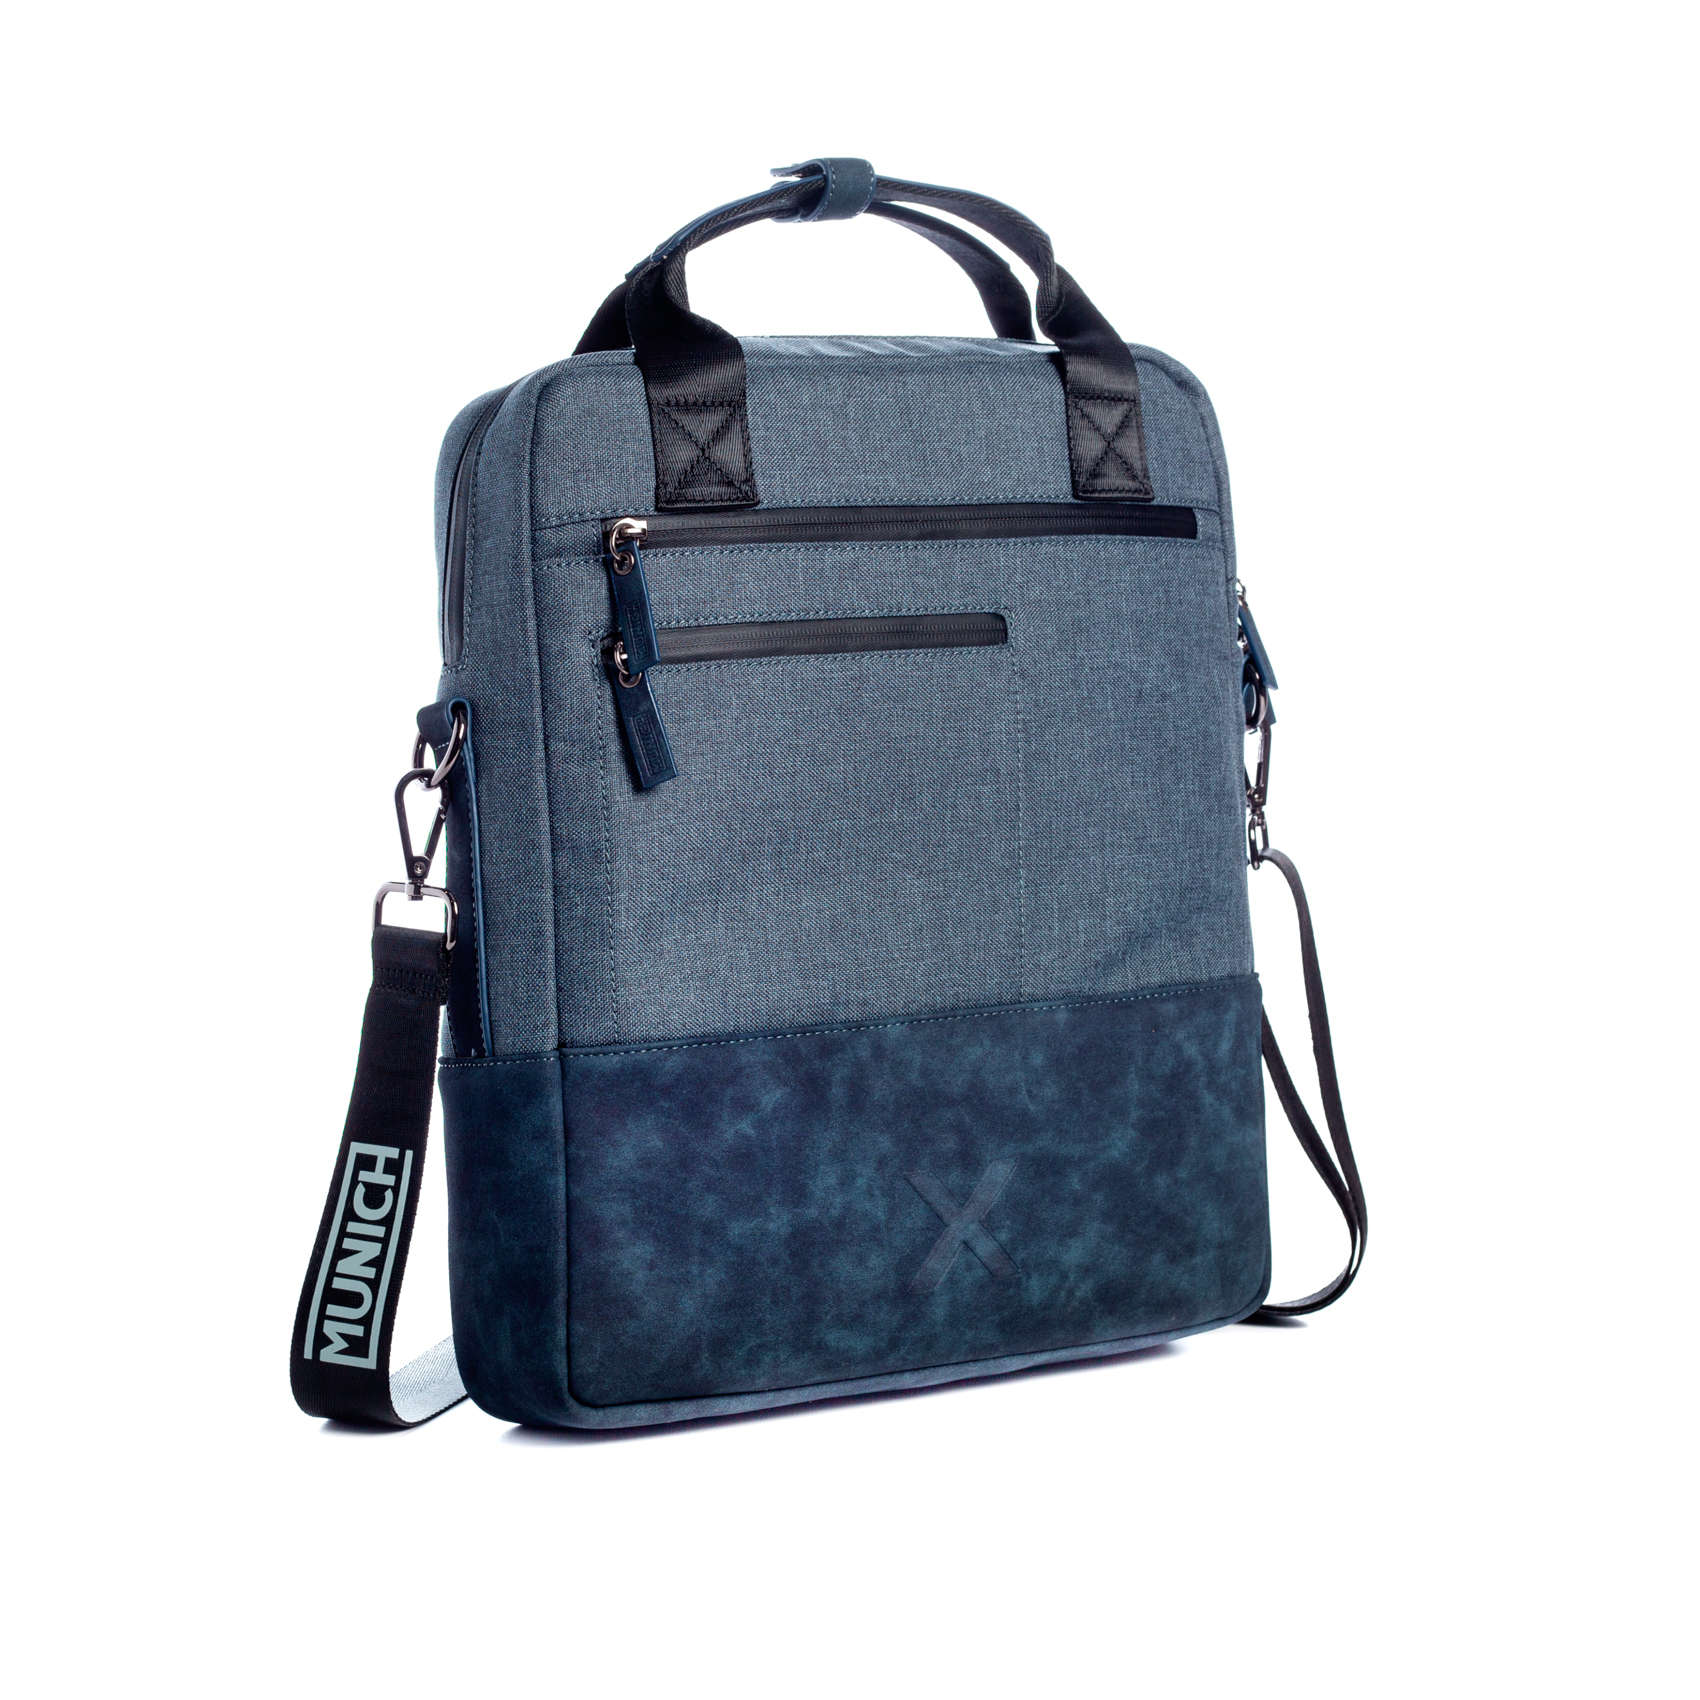 MUNICH CITY CASUAL BRIEFCASE 7019006